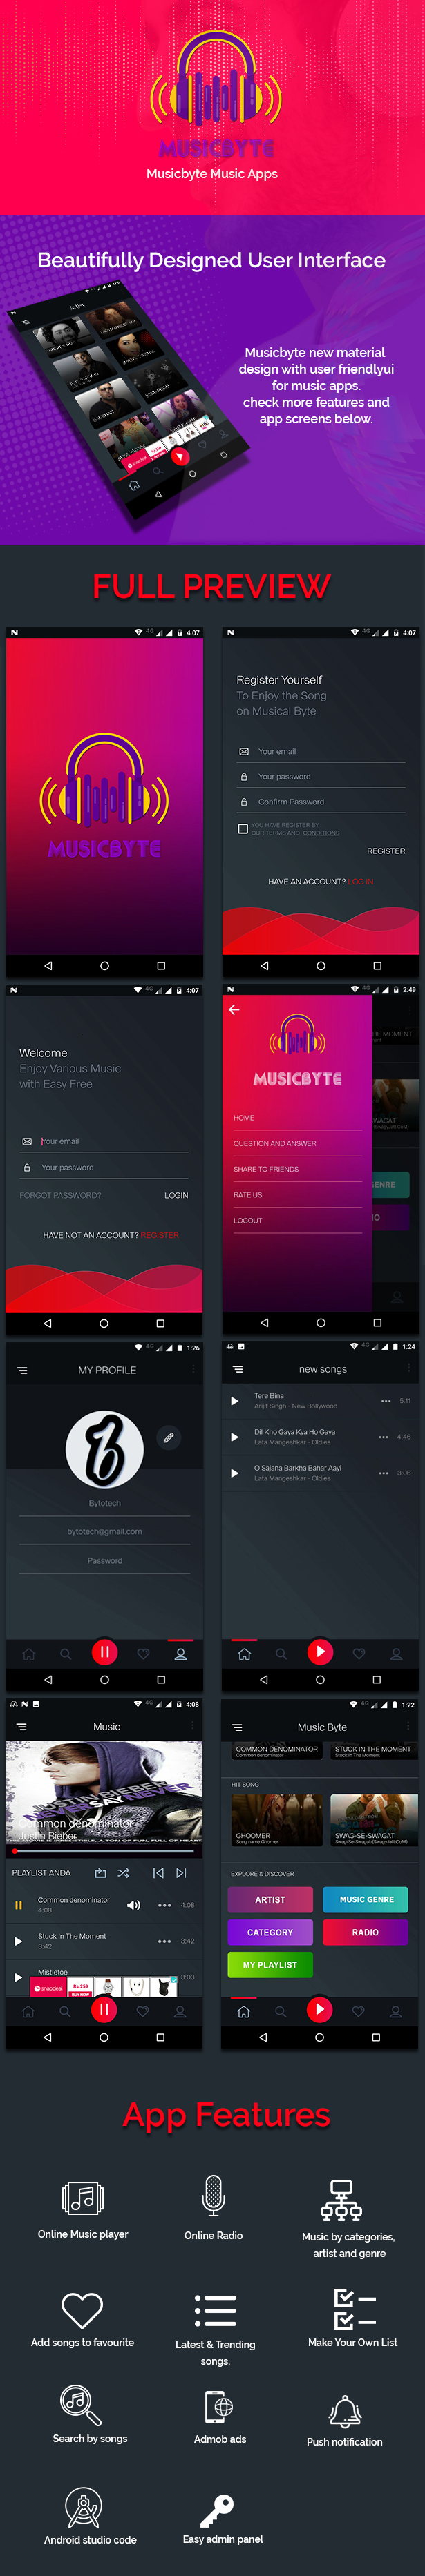 MusicByte (Android) - online Mp3 music player application - 1